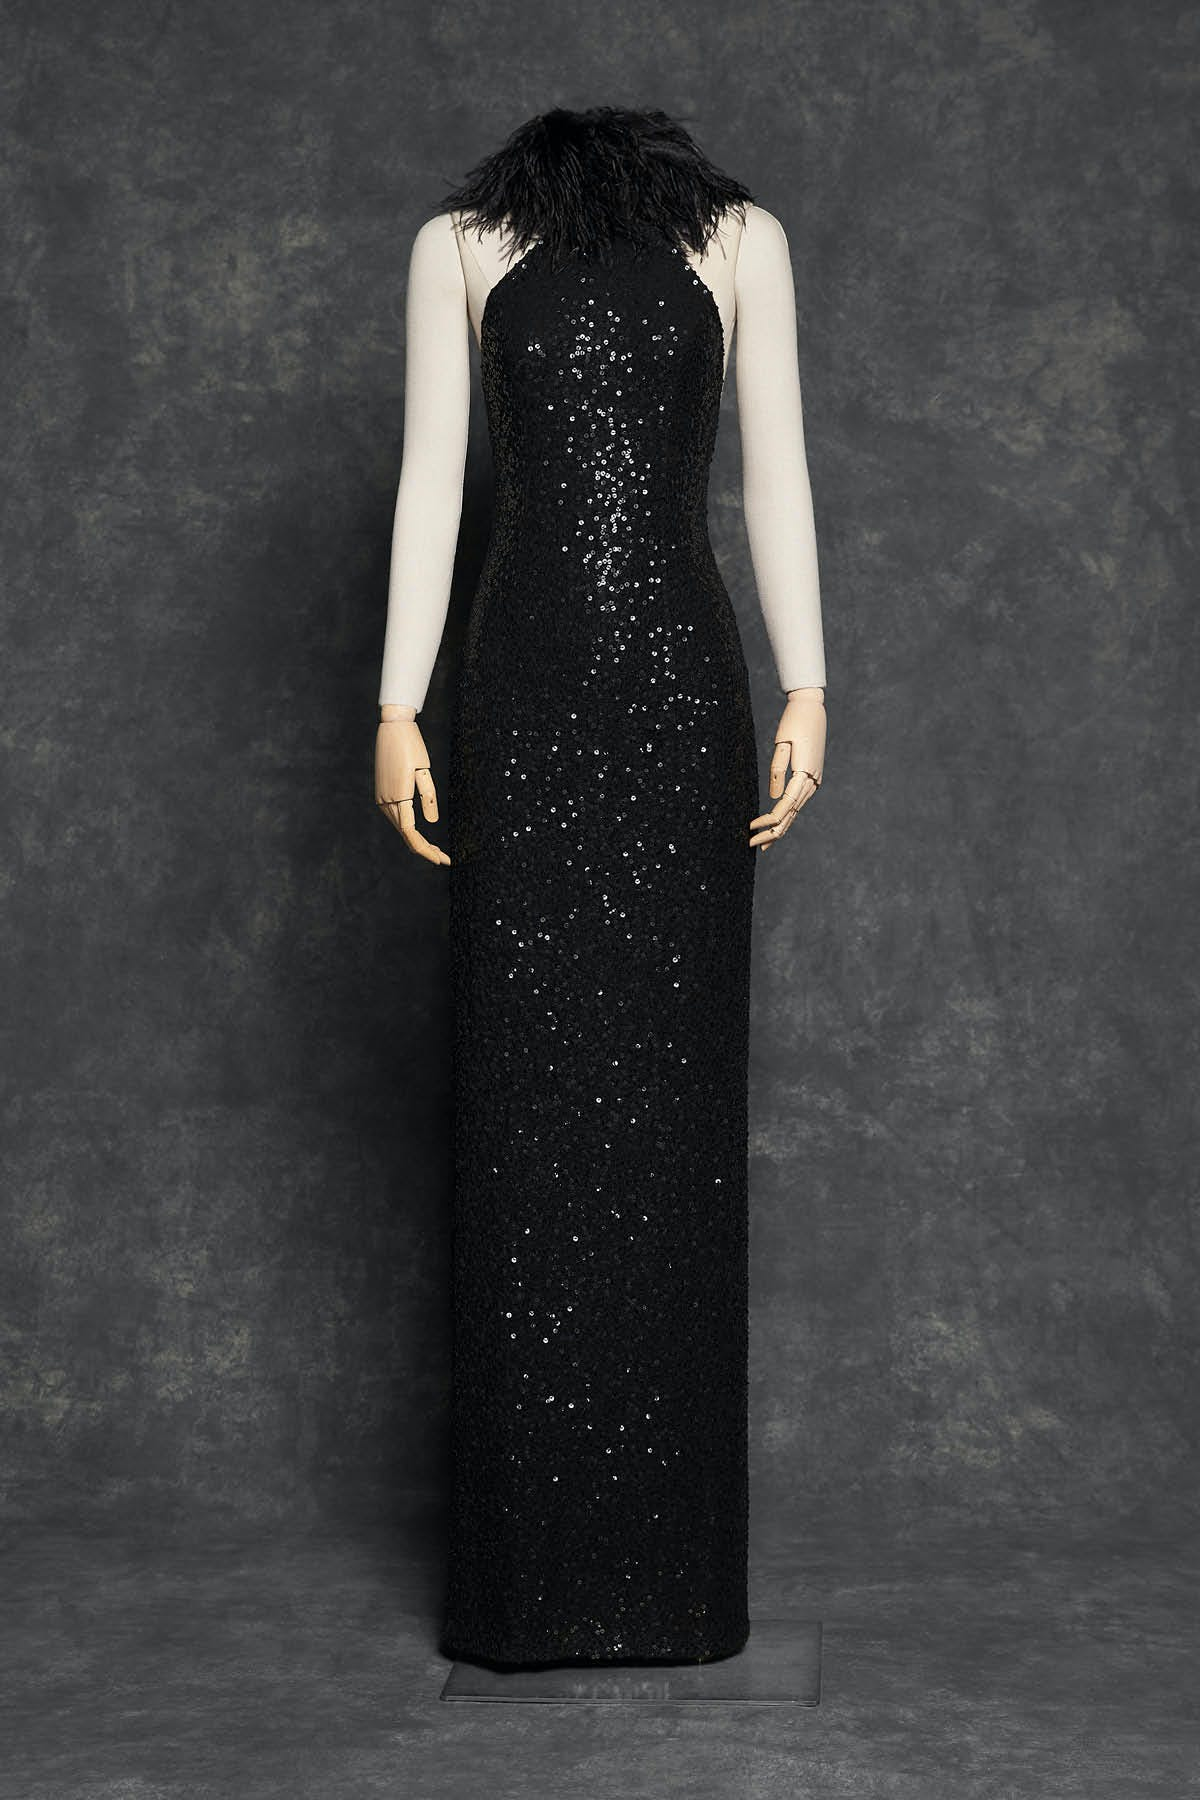 BLACK GOWN WITH PAILLETTE HAND EMBROIDERY AND MARABOU FEATHERS